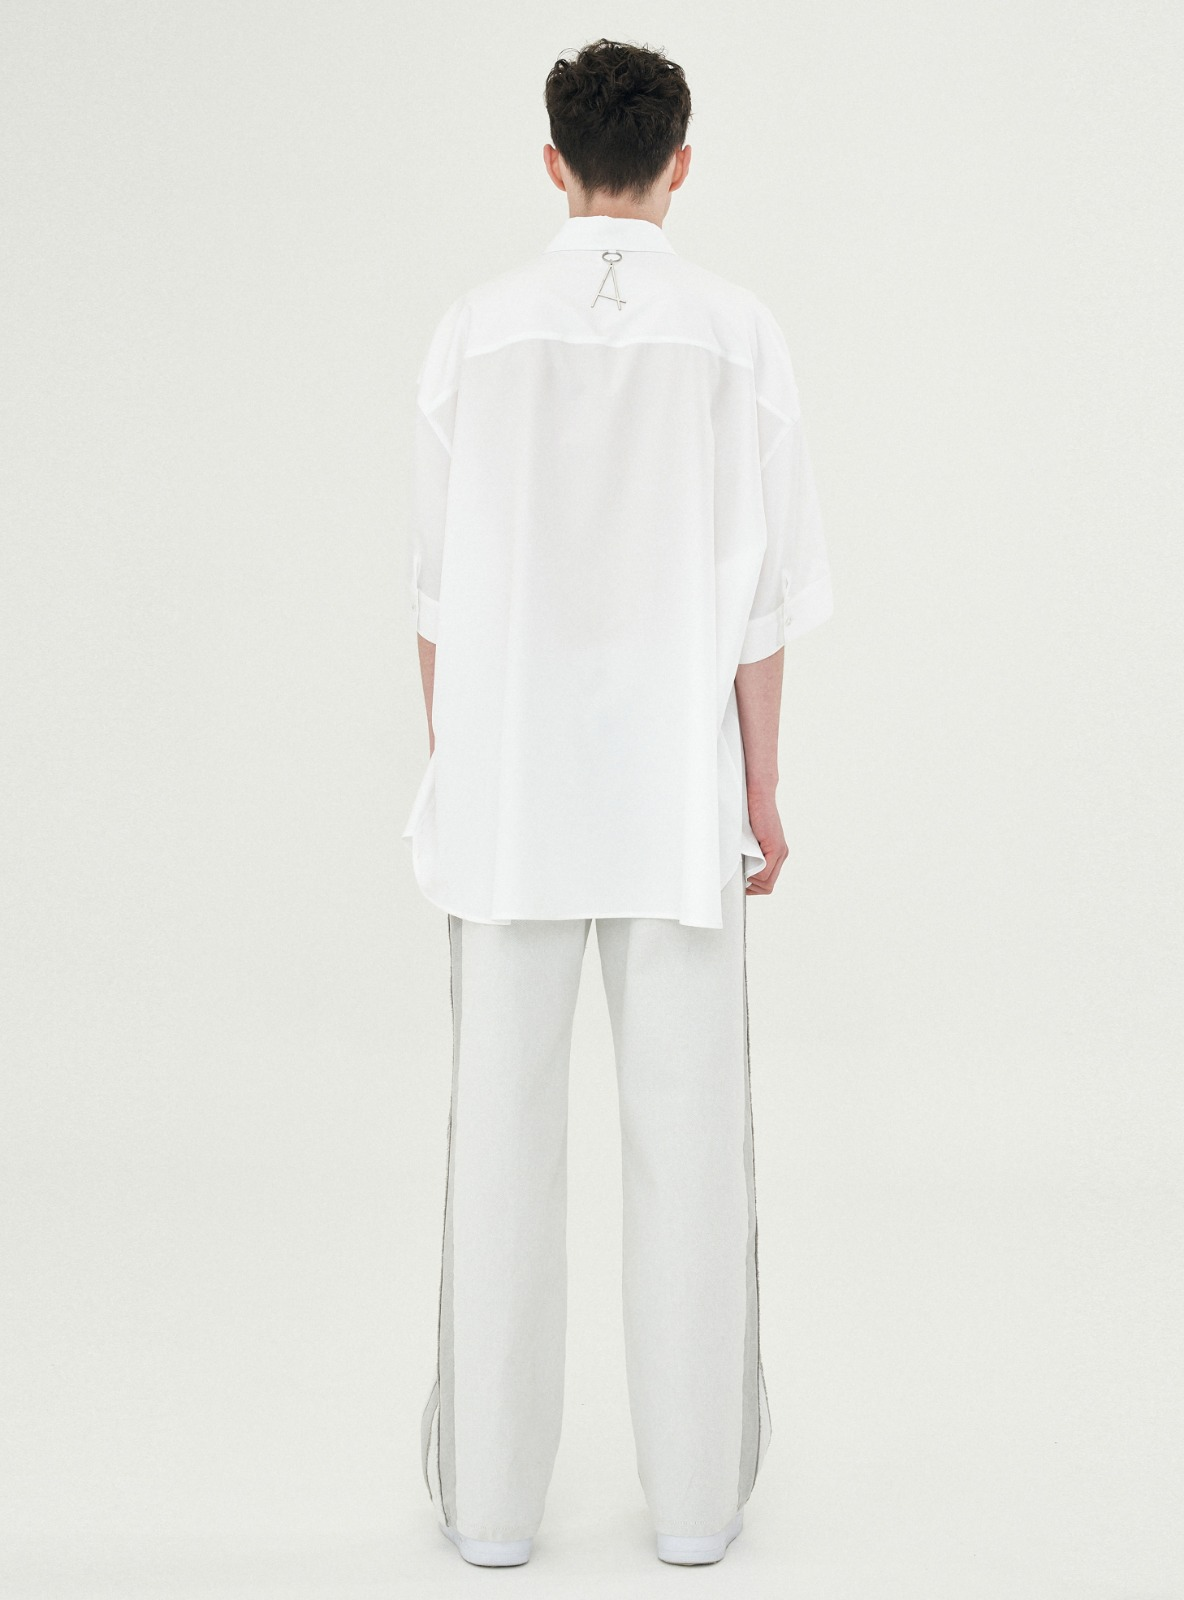 LOGO DROPPED AVANTGARDE SHIRT WHITE